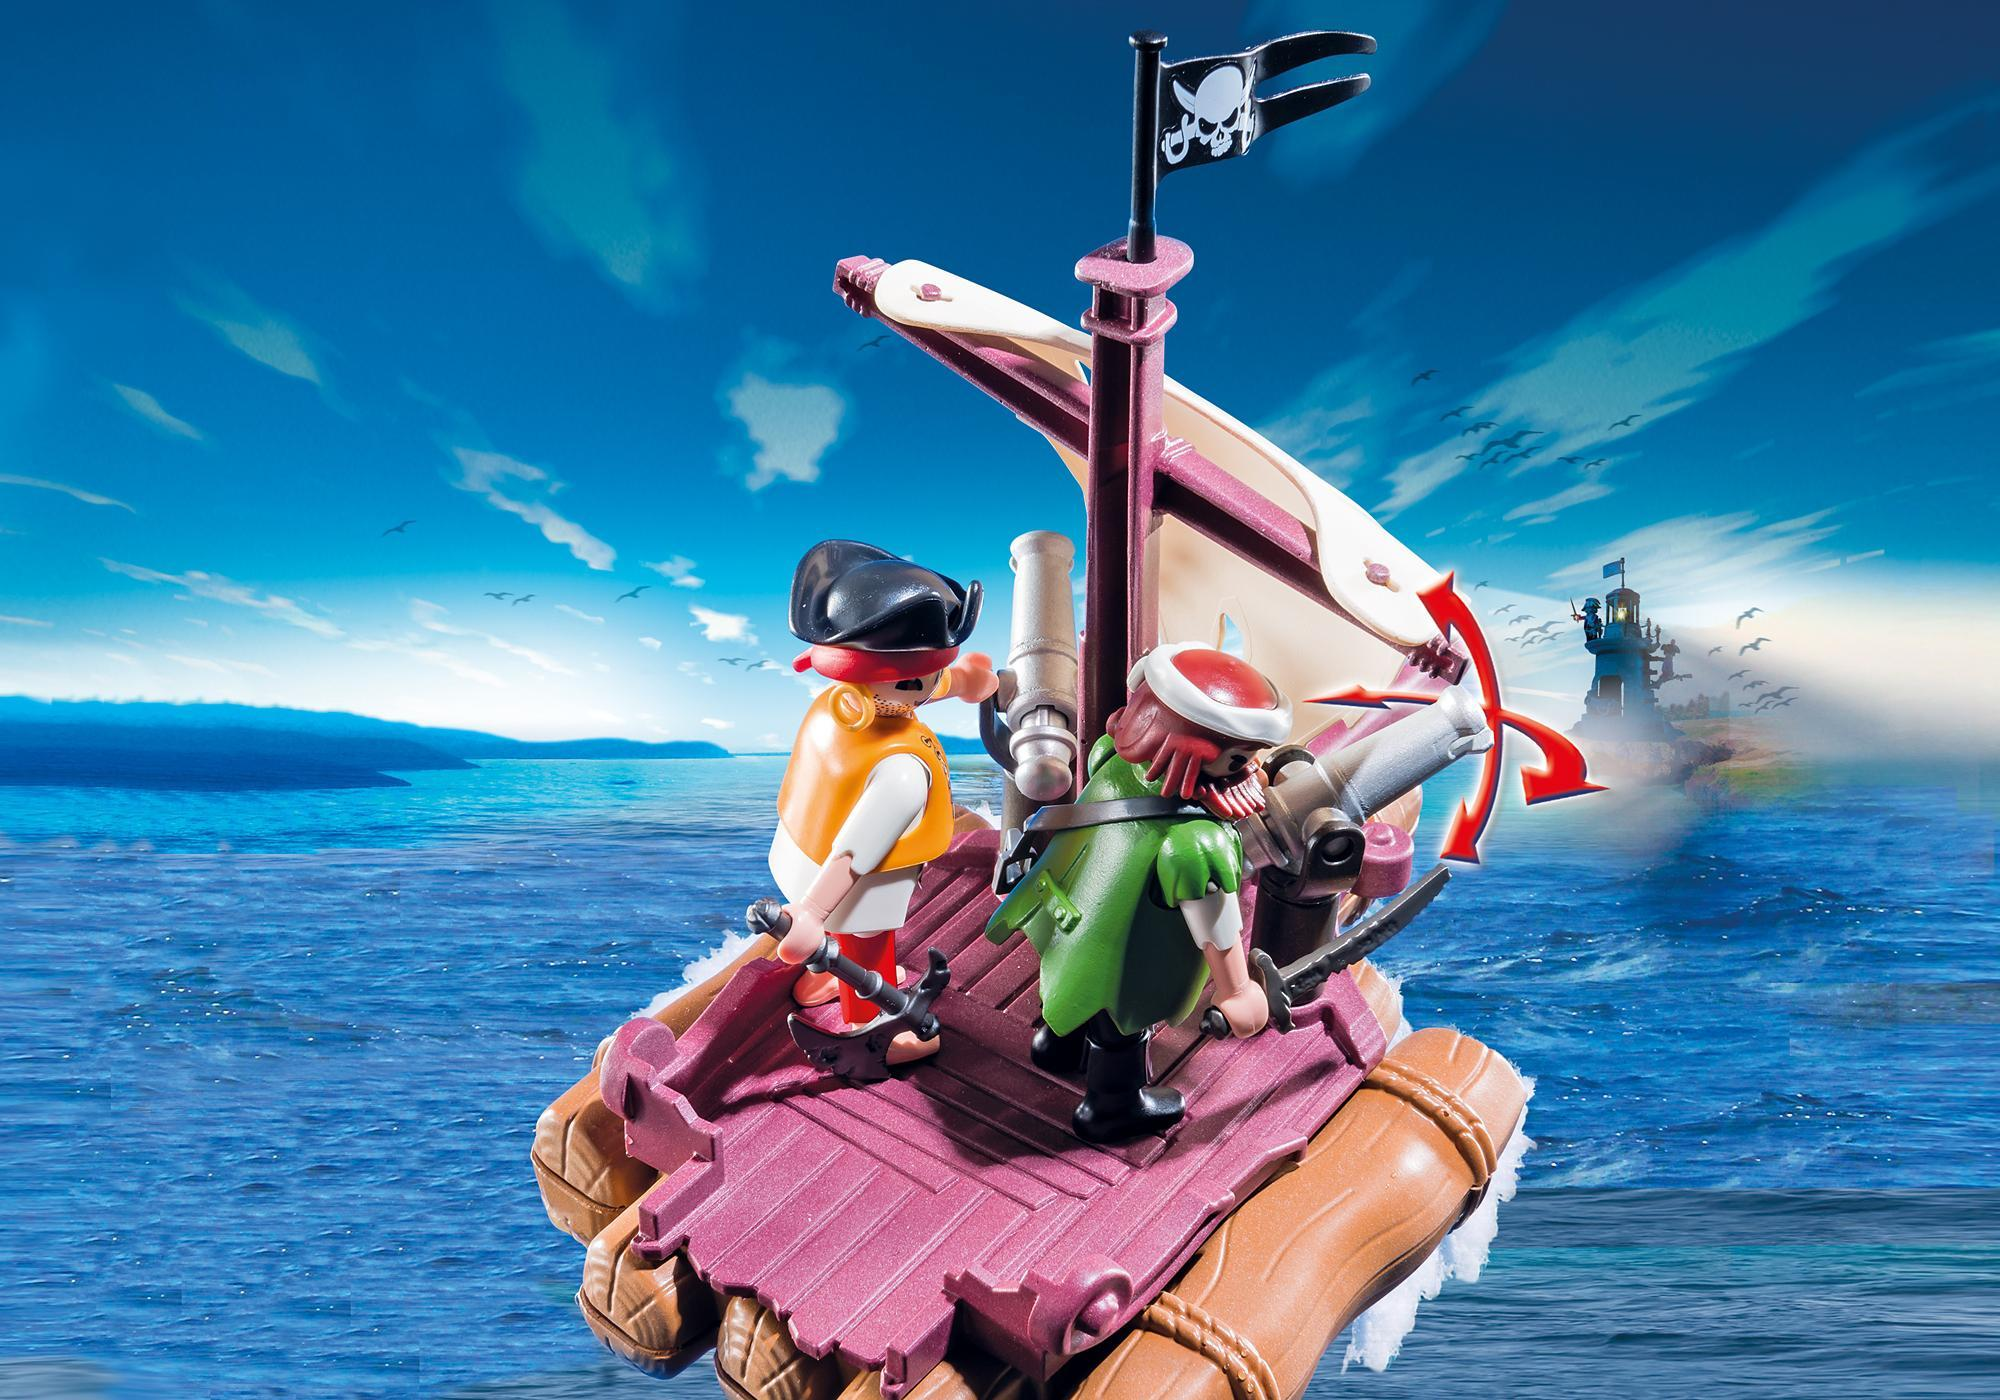 http://media.playmobil.com/i/playmobil/6682_product_extra1/Piratenfloß